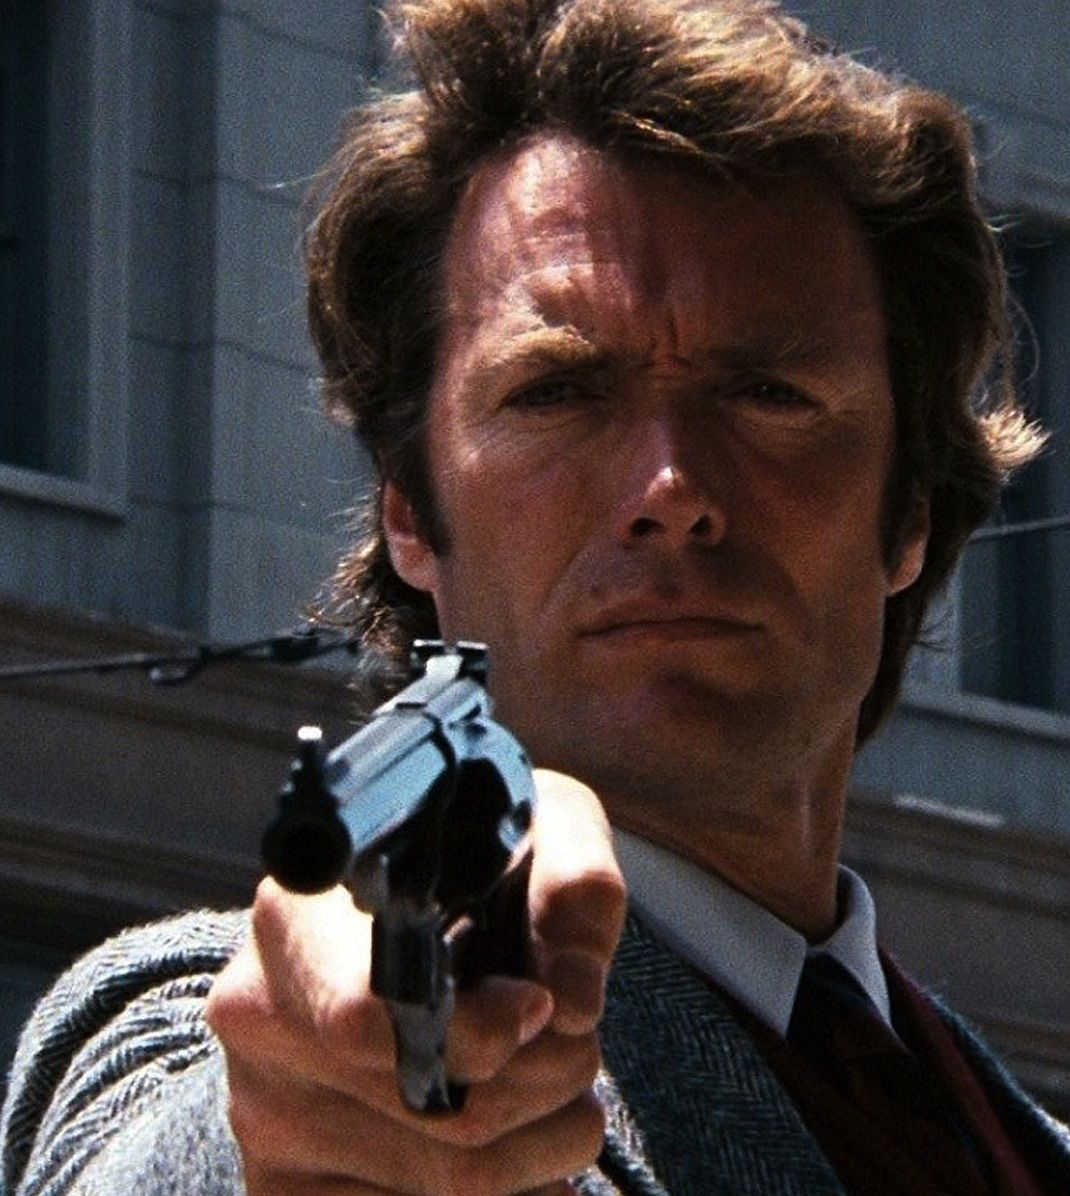 """Clint Eastwood, Dirty Harry """"...so you've got to ask yourself one question - do I feel lucky? Well do ya punk!"""" Enough said."""